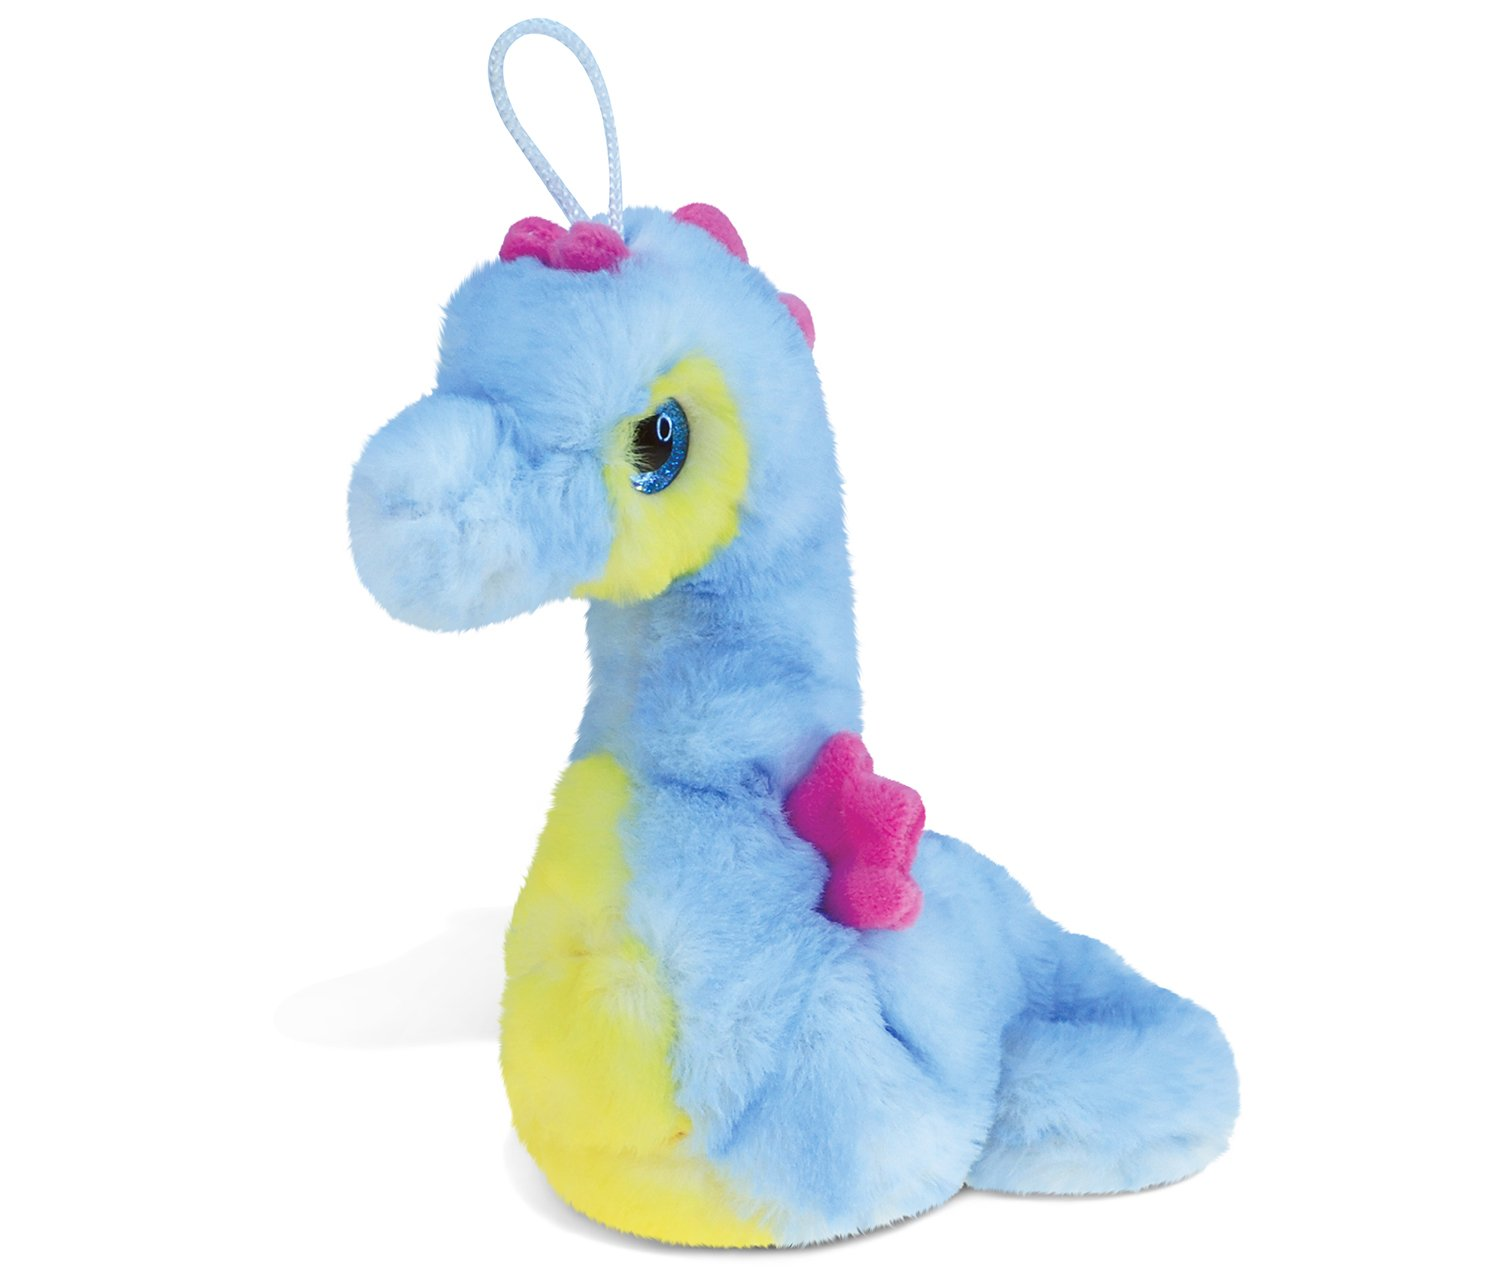 Puzzled Blue Seahorse Super-Soft Stuffed Plush Cuddly Animal Toy - Ocean Life Theme - 8.5 INCH - Unique Huggable Loveable New Friend Gift - Item #5376